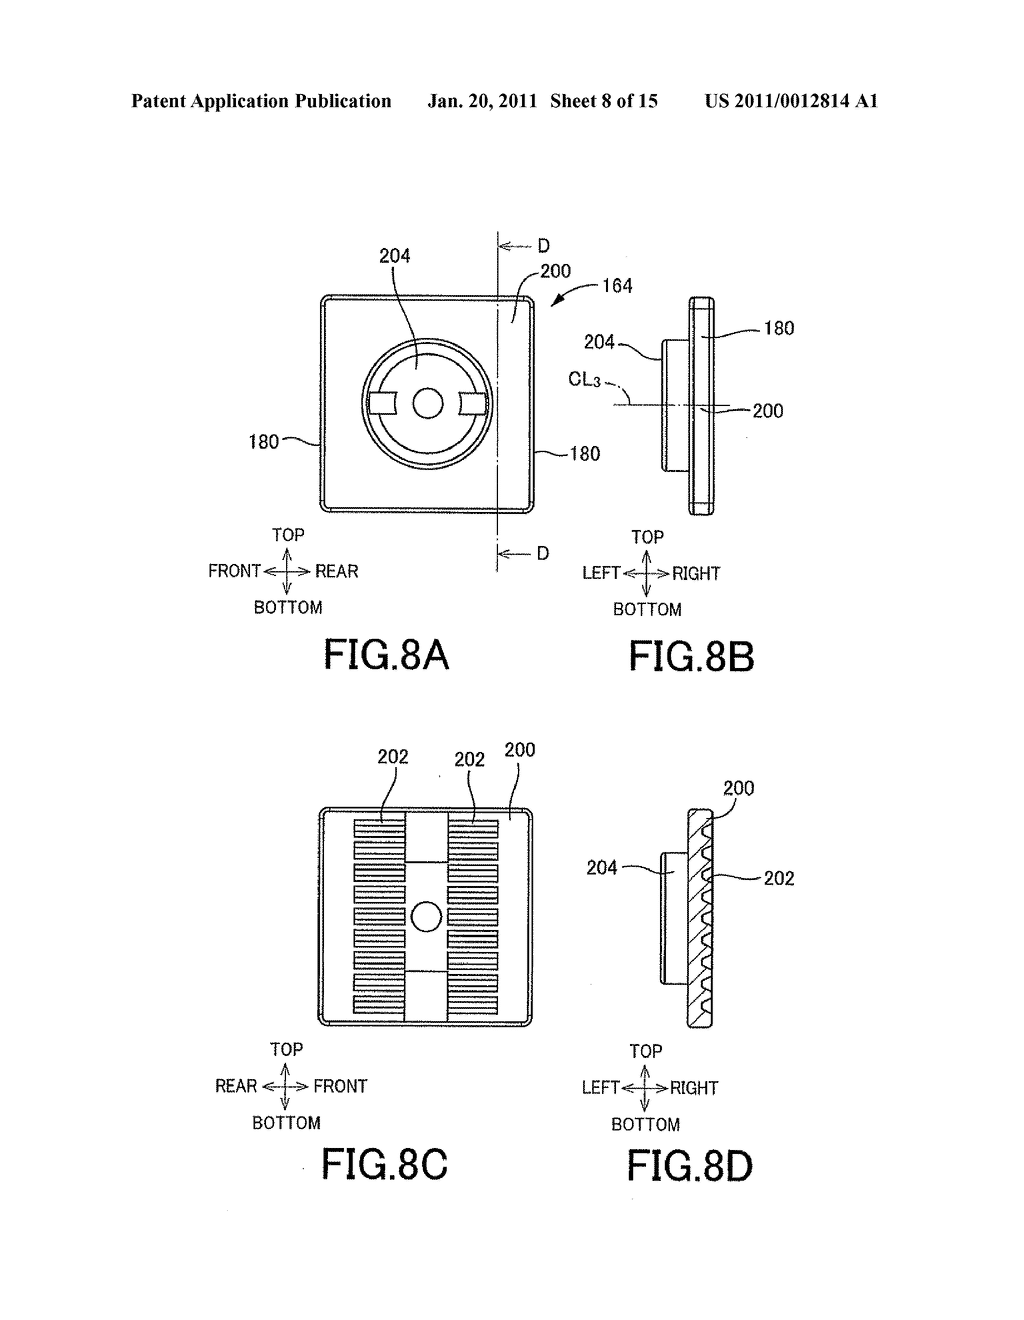 Adjustable Attachment for Attaching Head-Mounted Display to Eyeglasses-Type Frame - diagram, schematic, and image 09